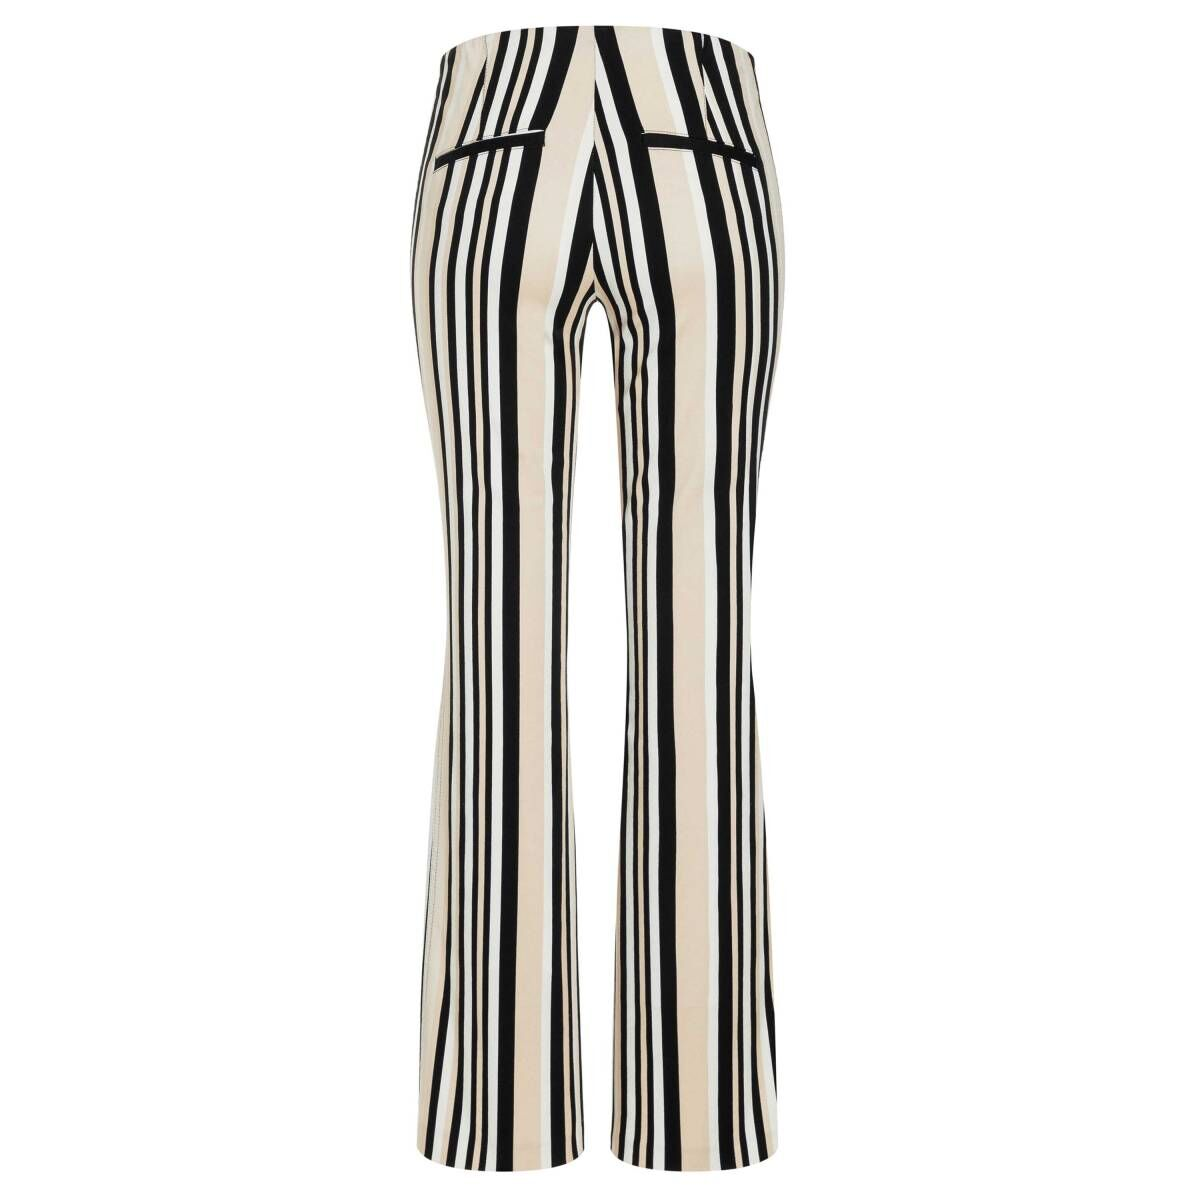 Cambio trousers ROS FLAIR 8782 0350 05 Taupe by